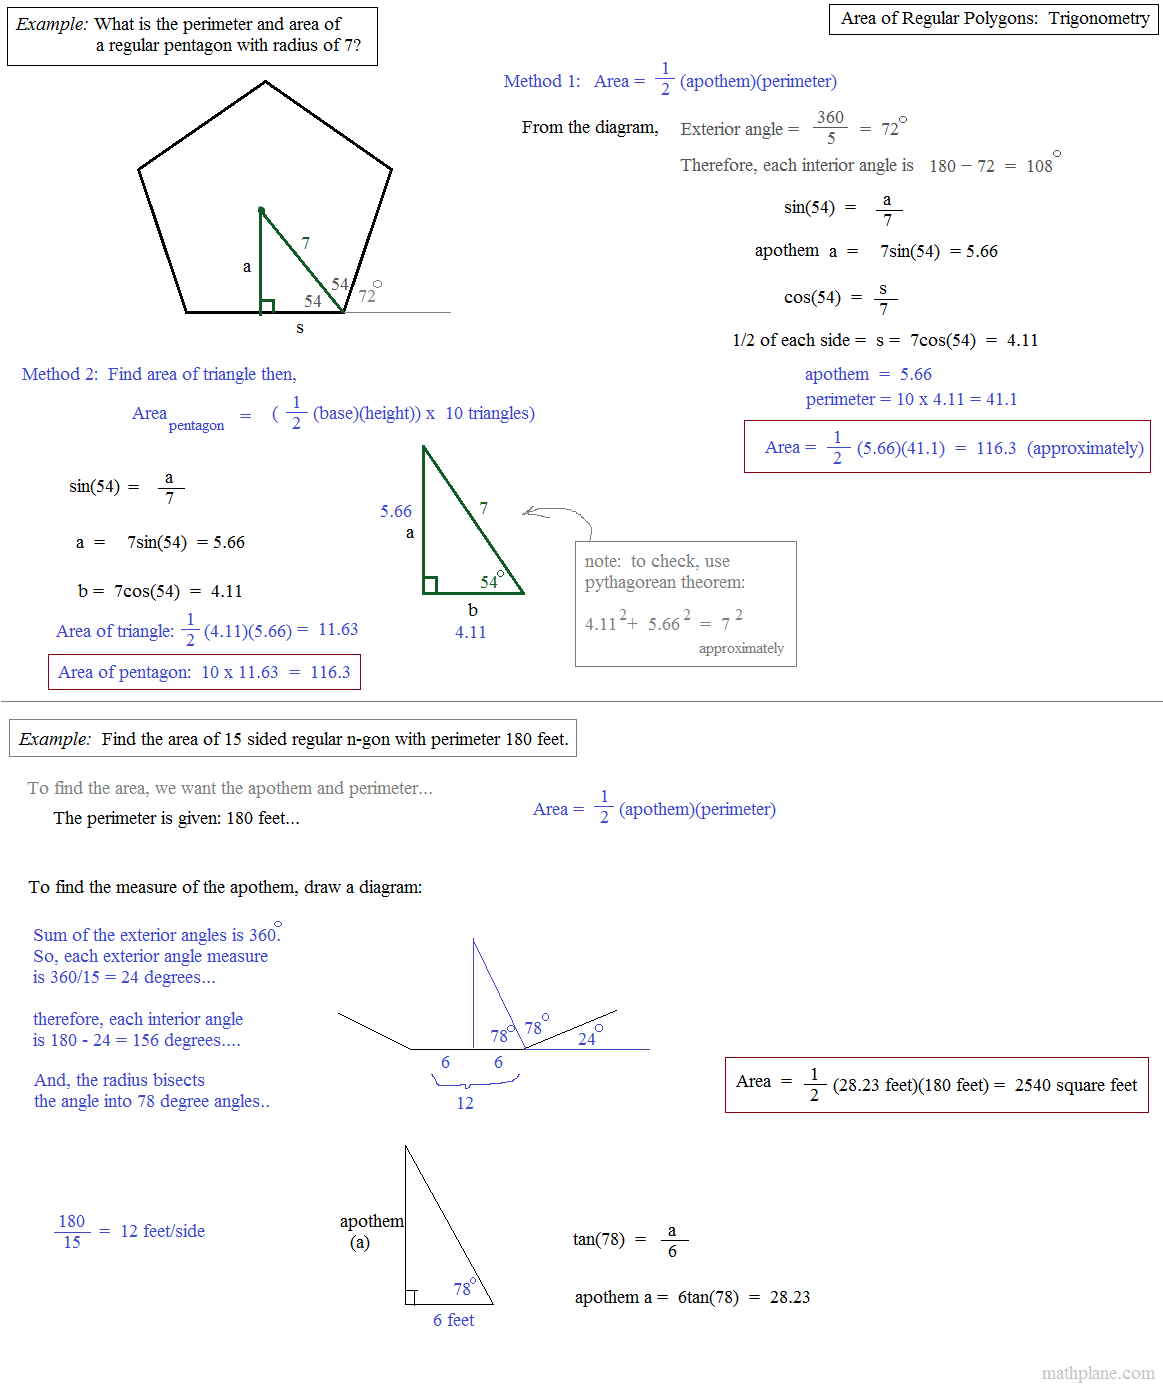 Math Plane - Area and Perimeter of Polygons 2